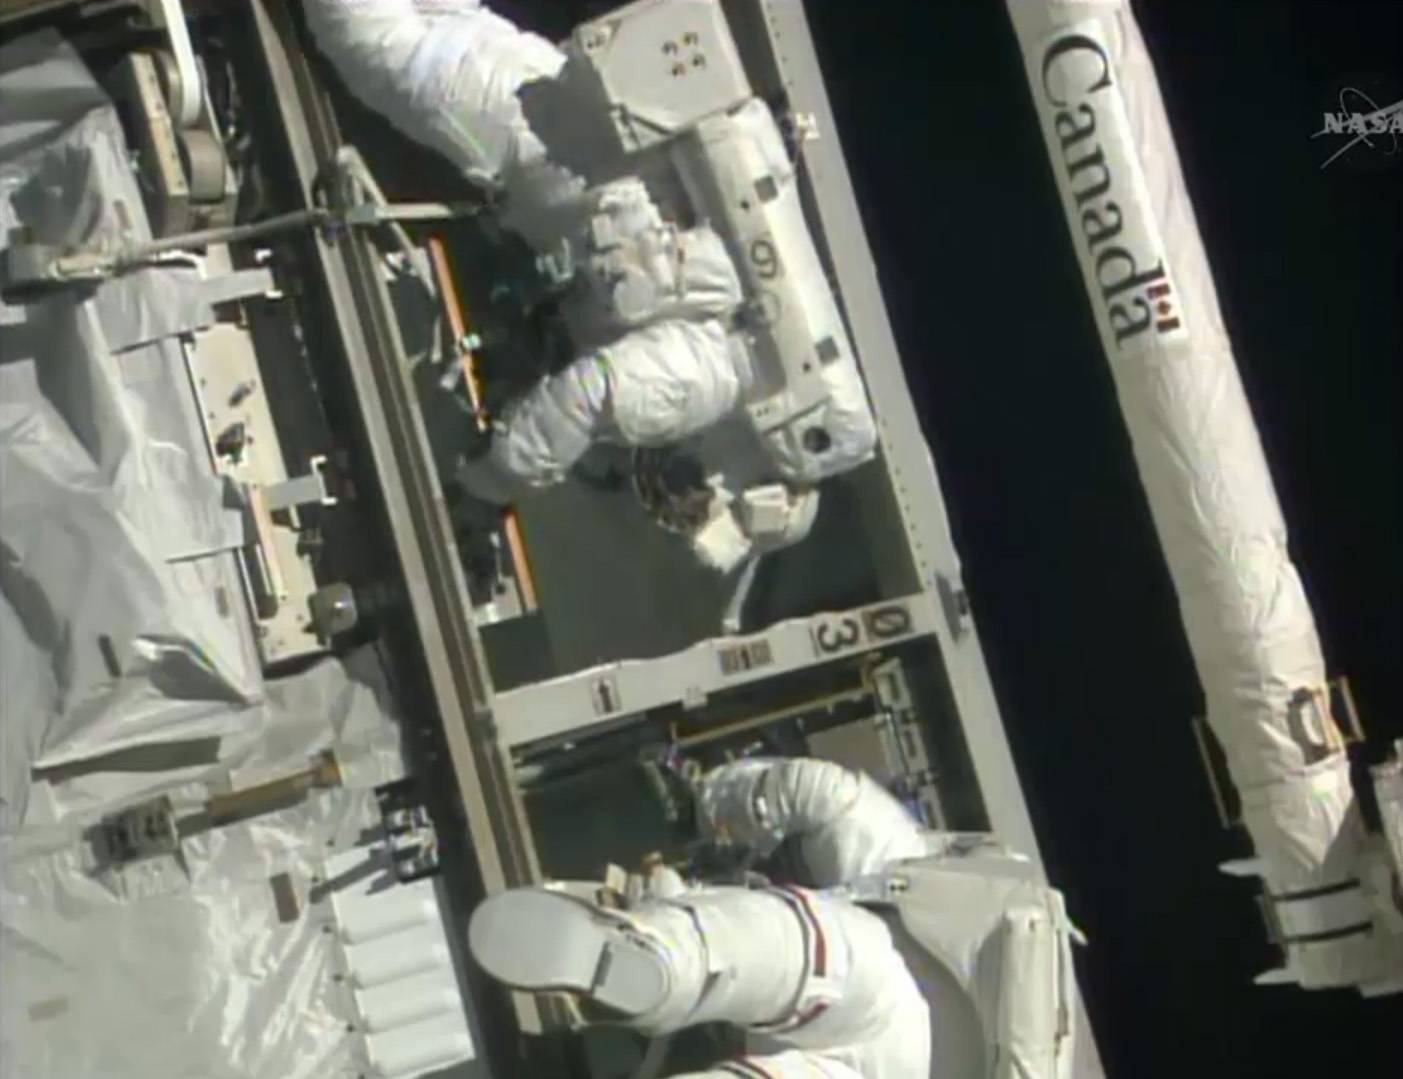 Astronauts Steven Swanson, left, and Rick Mastracchio perform a spacewalk outside the International Space Station to replace a dead computer. The device is a critical backup outside the station that failed nearly two weeks ago. The prime computer has been working fine, but NASA wanted to install a fresh spare as soon as possible.